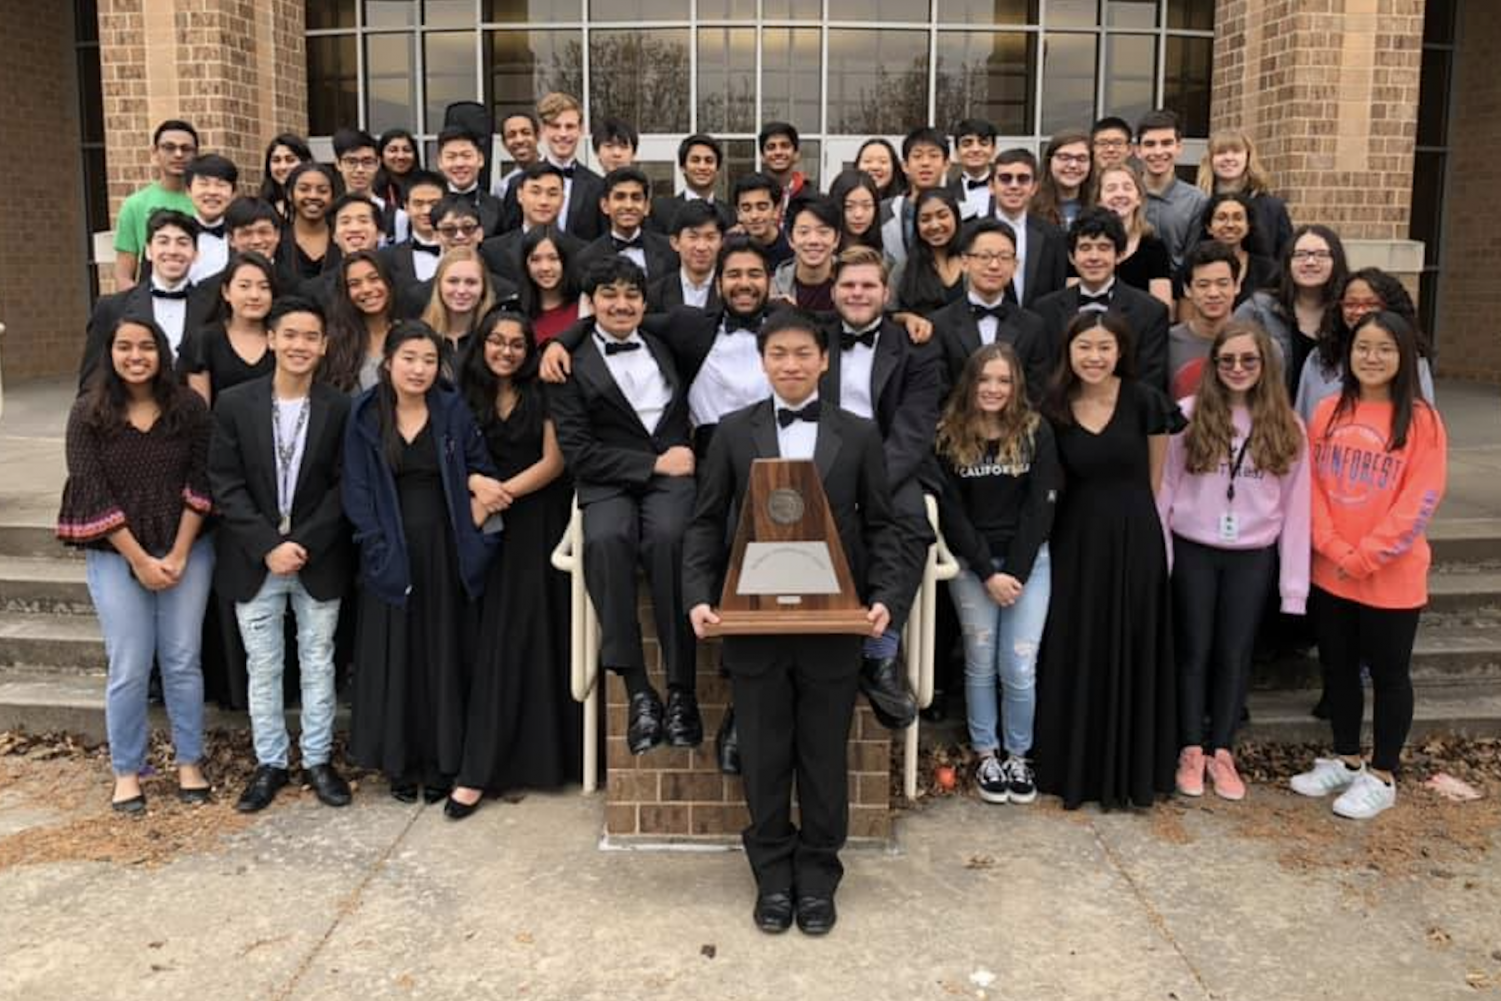 Following their Friday performance at Centennial, the Redhawk full orchestra stand outside the campus auditorium with their sweepstakes award. The top group's performance concluded a week of UIL contests for orchestra that began Tuesday Feb. 26.